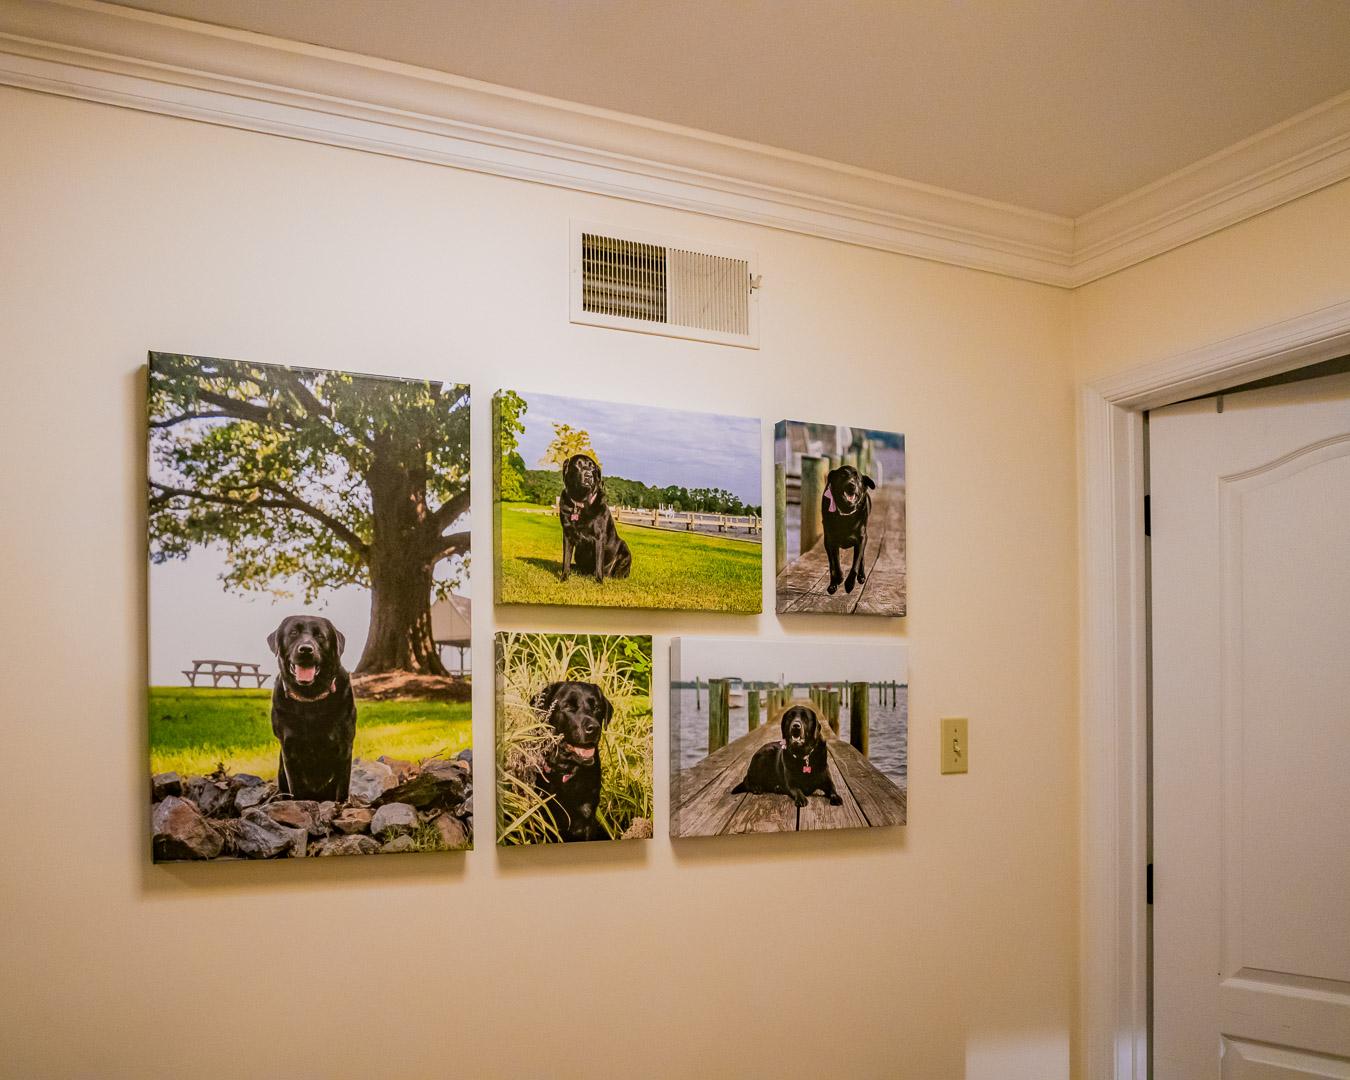 At the ordering appointment our photographer worked with the client to design an amazing wall gallery of canvas prints.